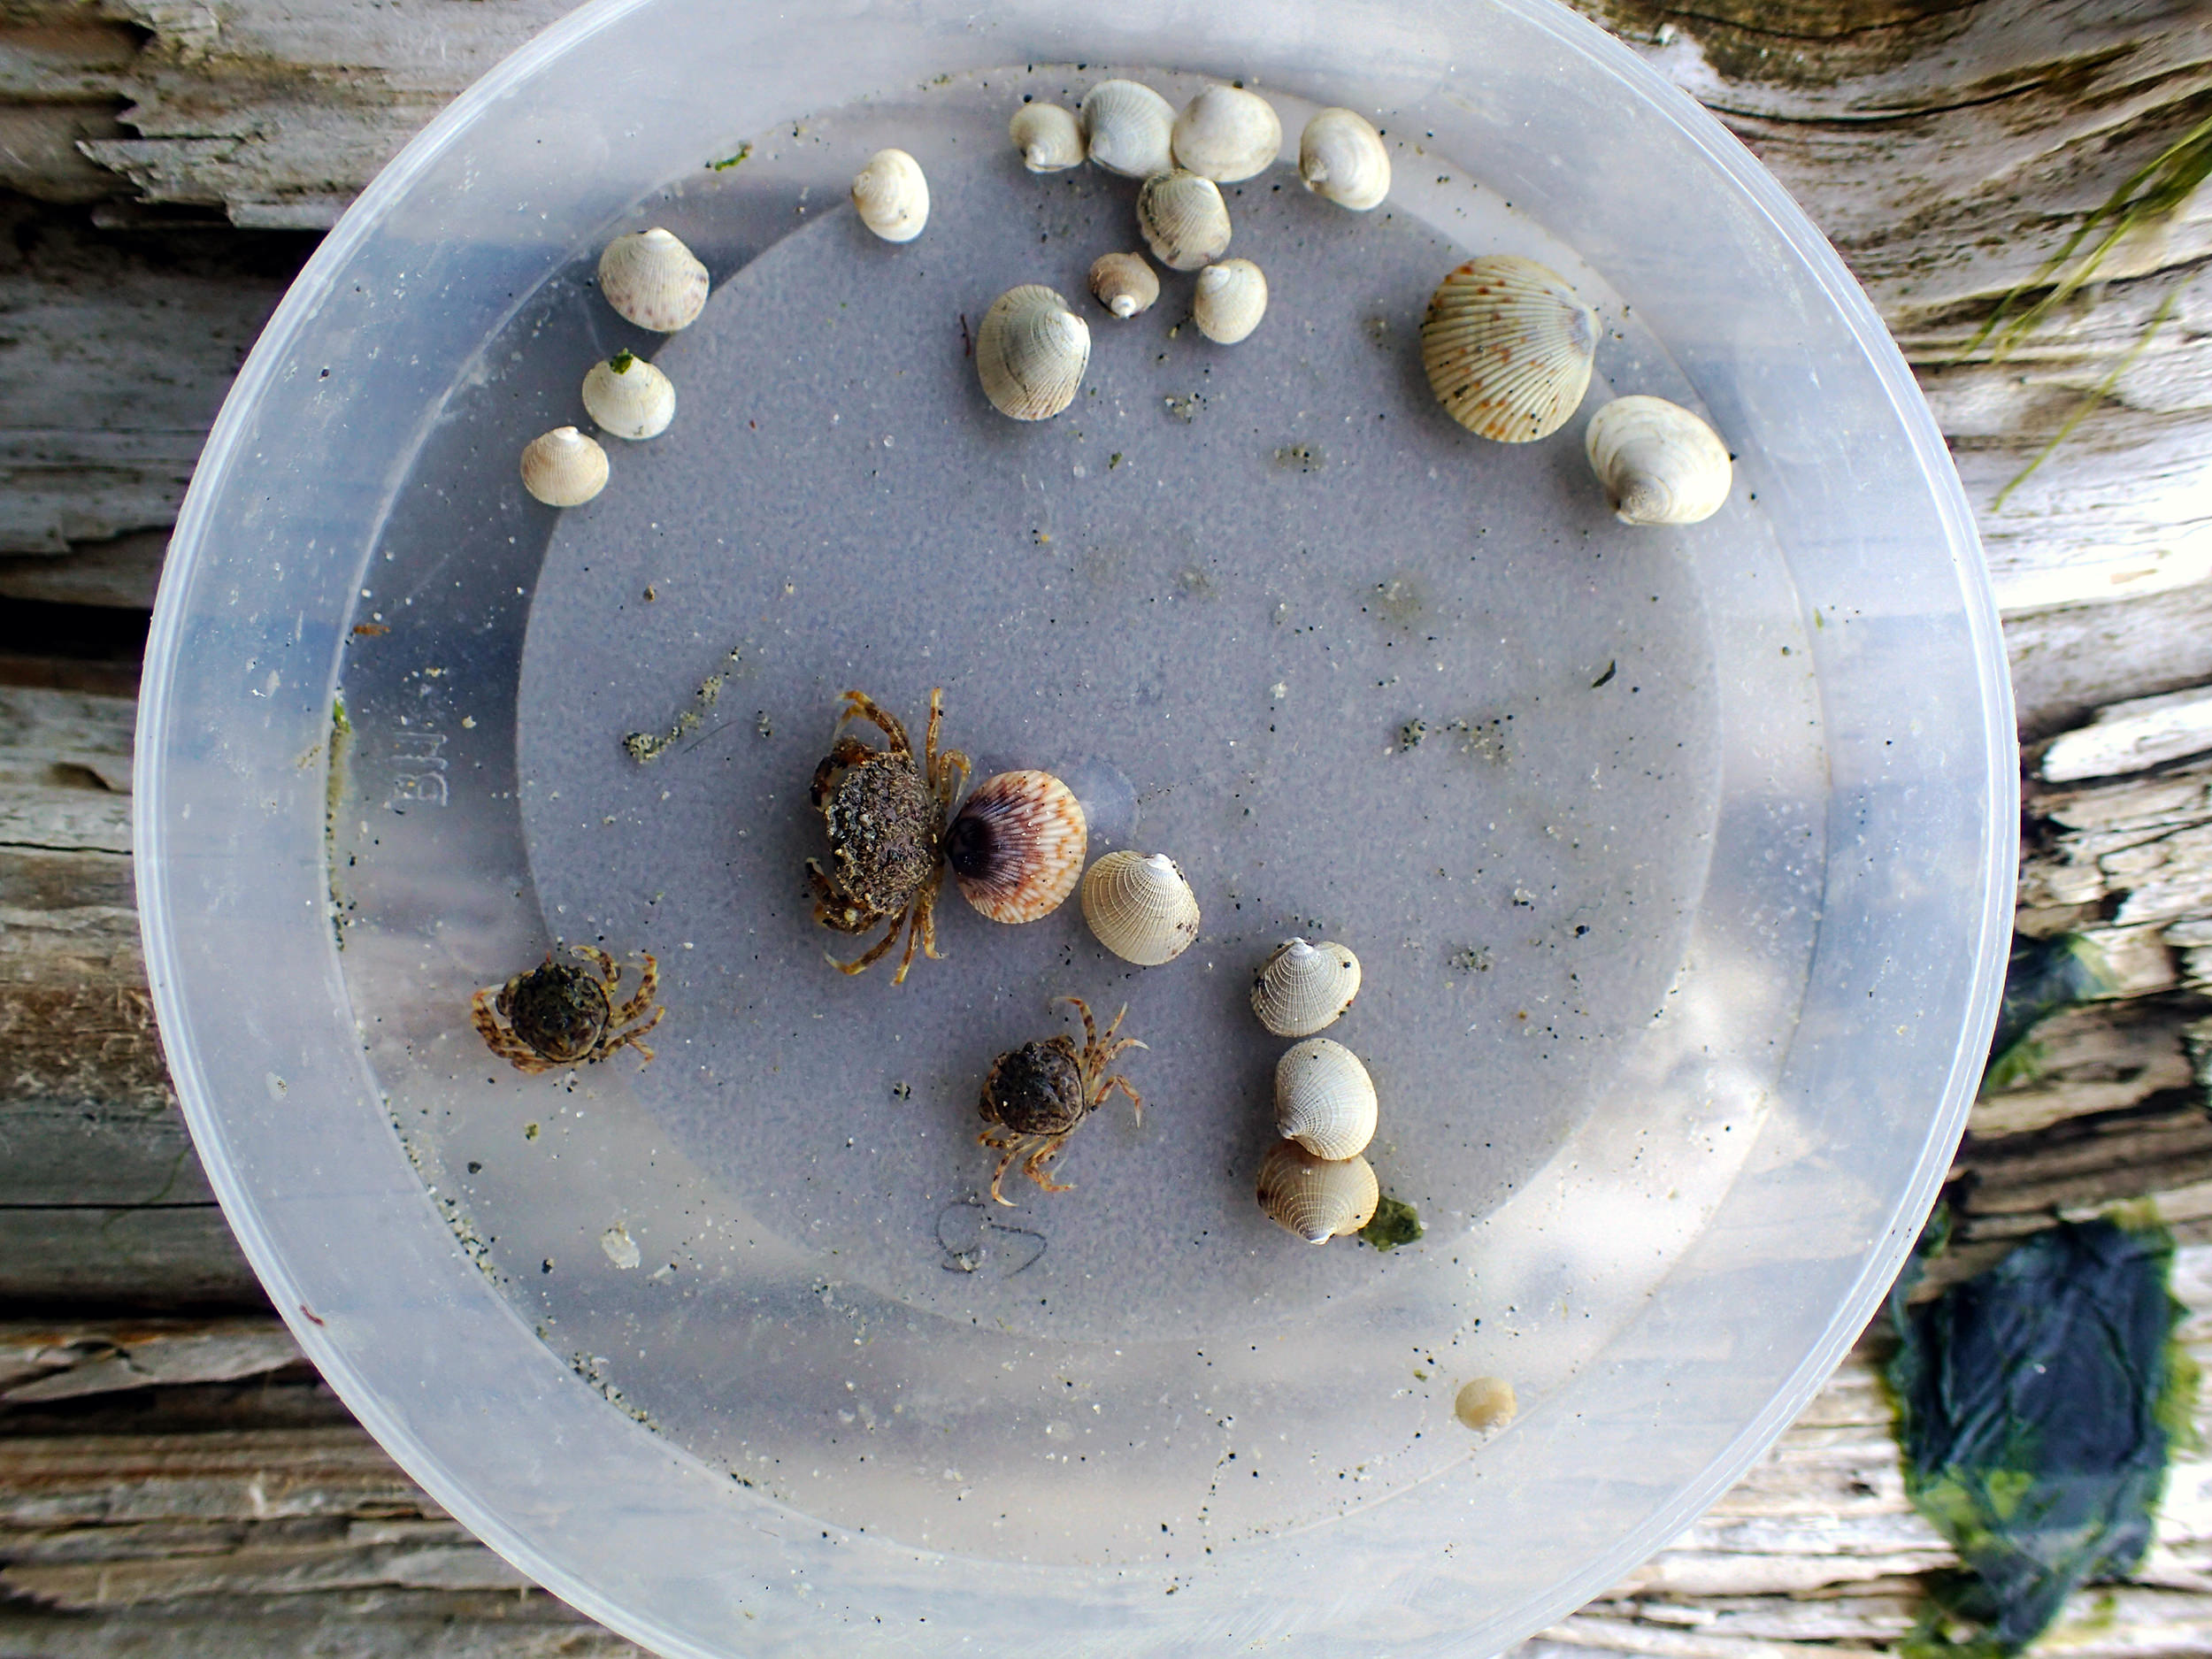 A sample of juvenile clams and Dungeness crab temporally collected from the Fulford Harbor clam garden site. Photo: Courtney Greiner